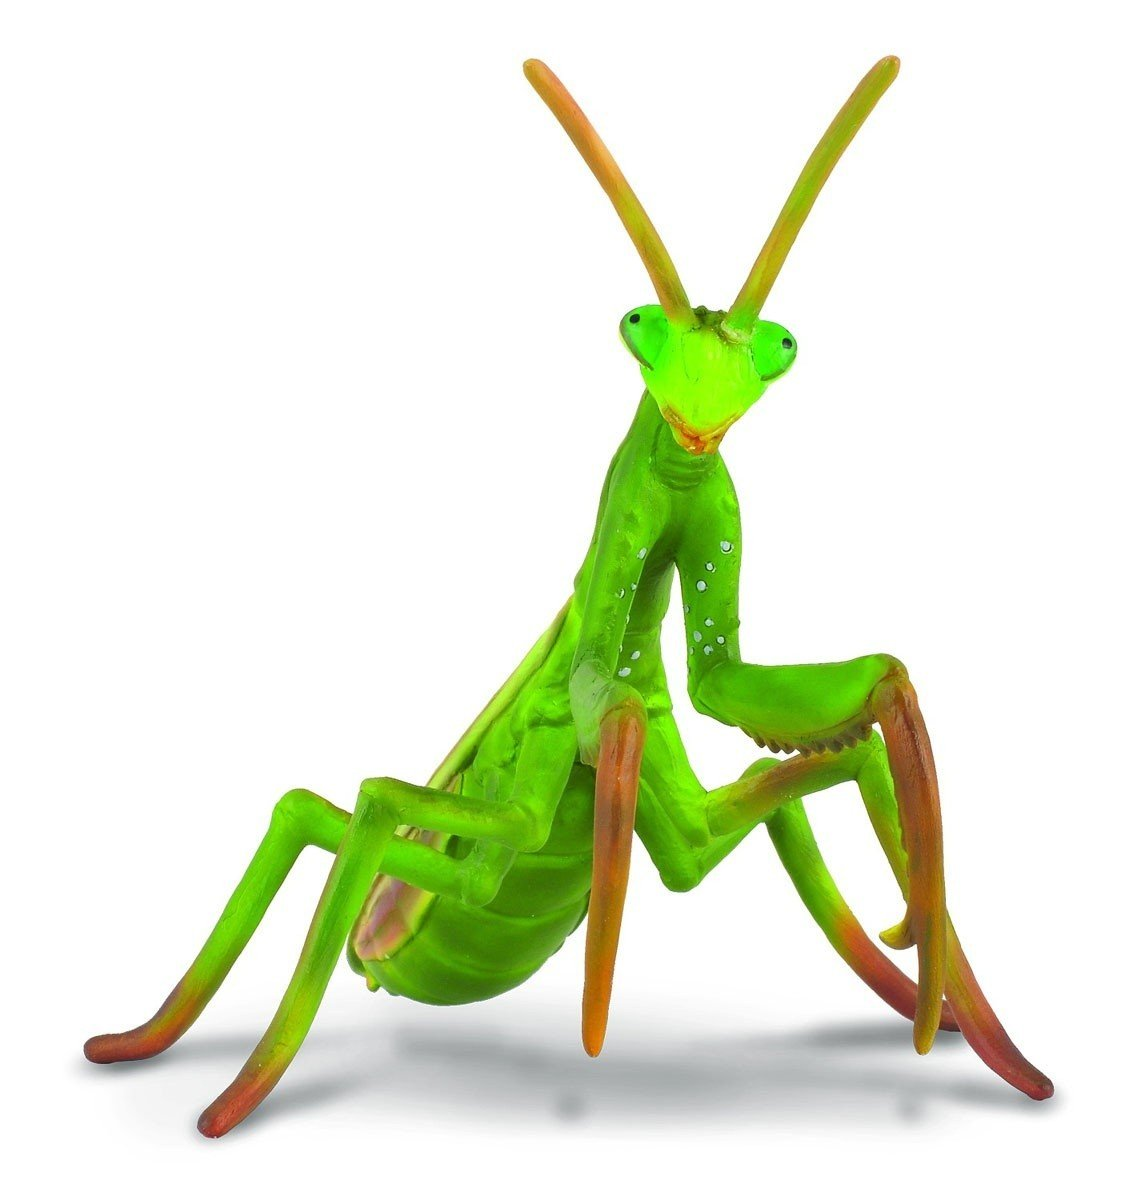 Amazon.com: CollectA Insects Praying Mantis Toy Figure - Authentic ...